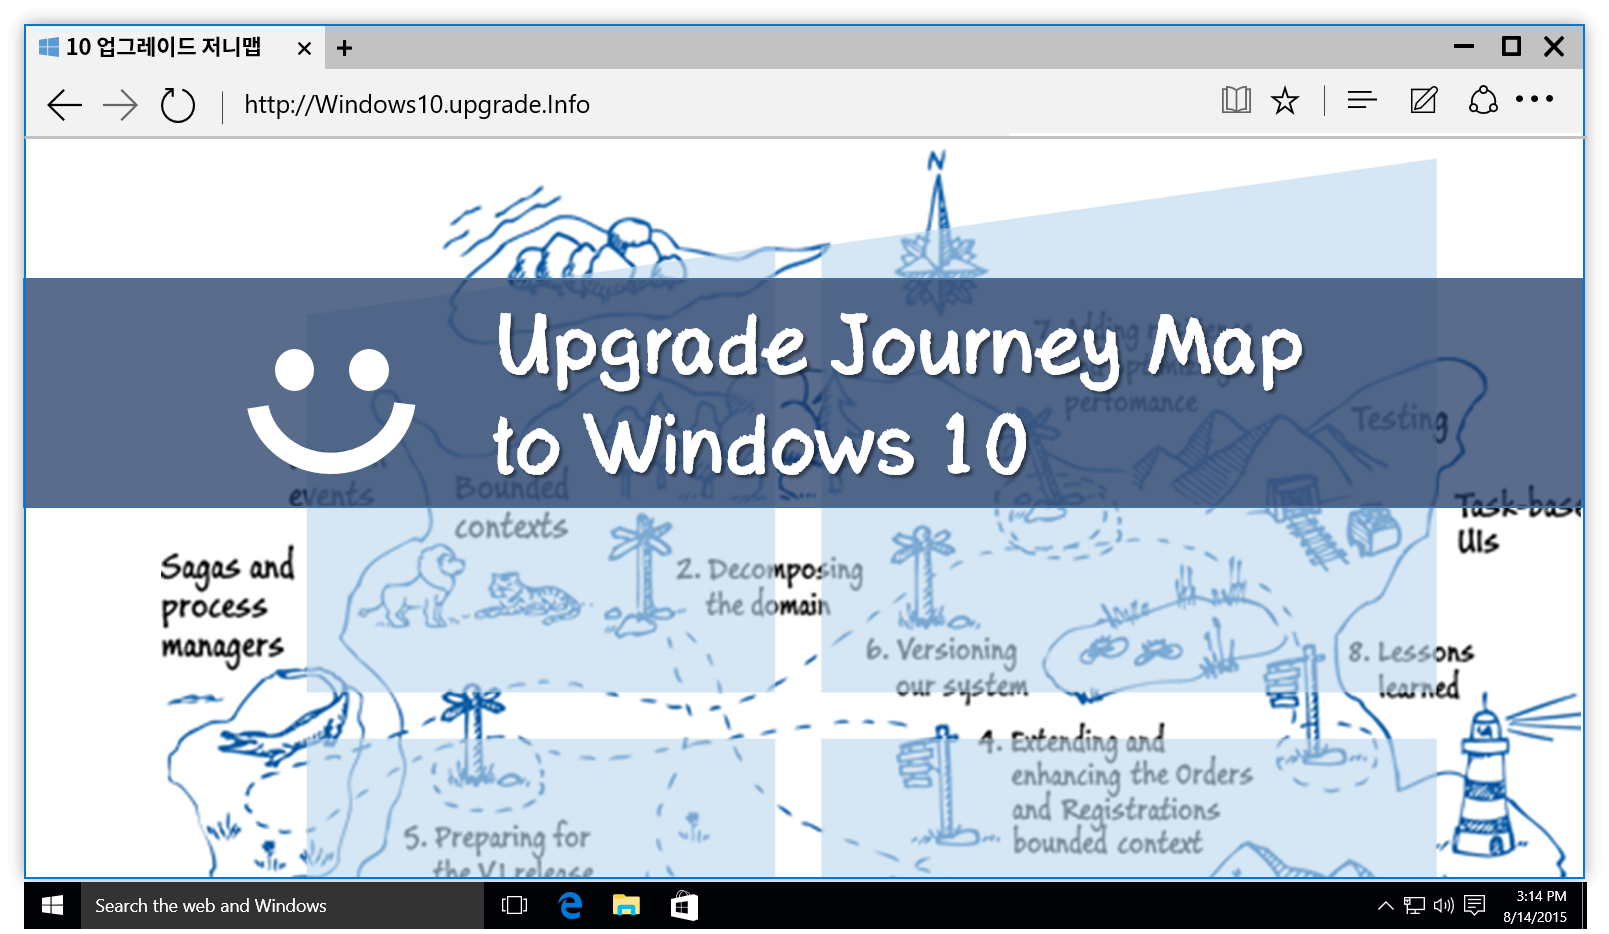 Windows 10 Upgrade Journey Map